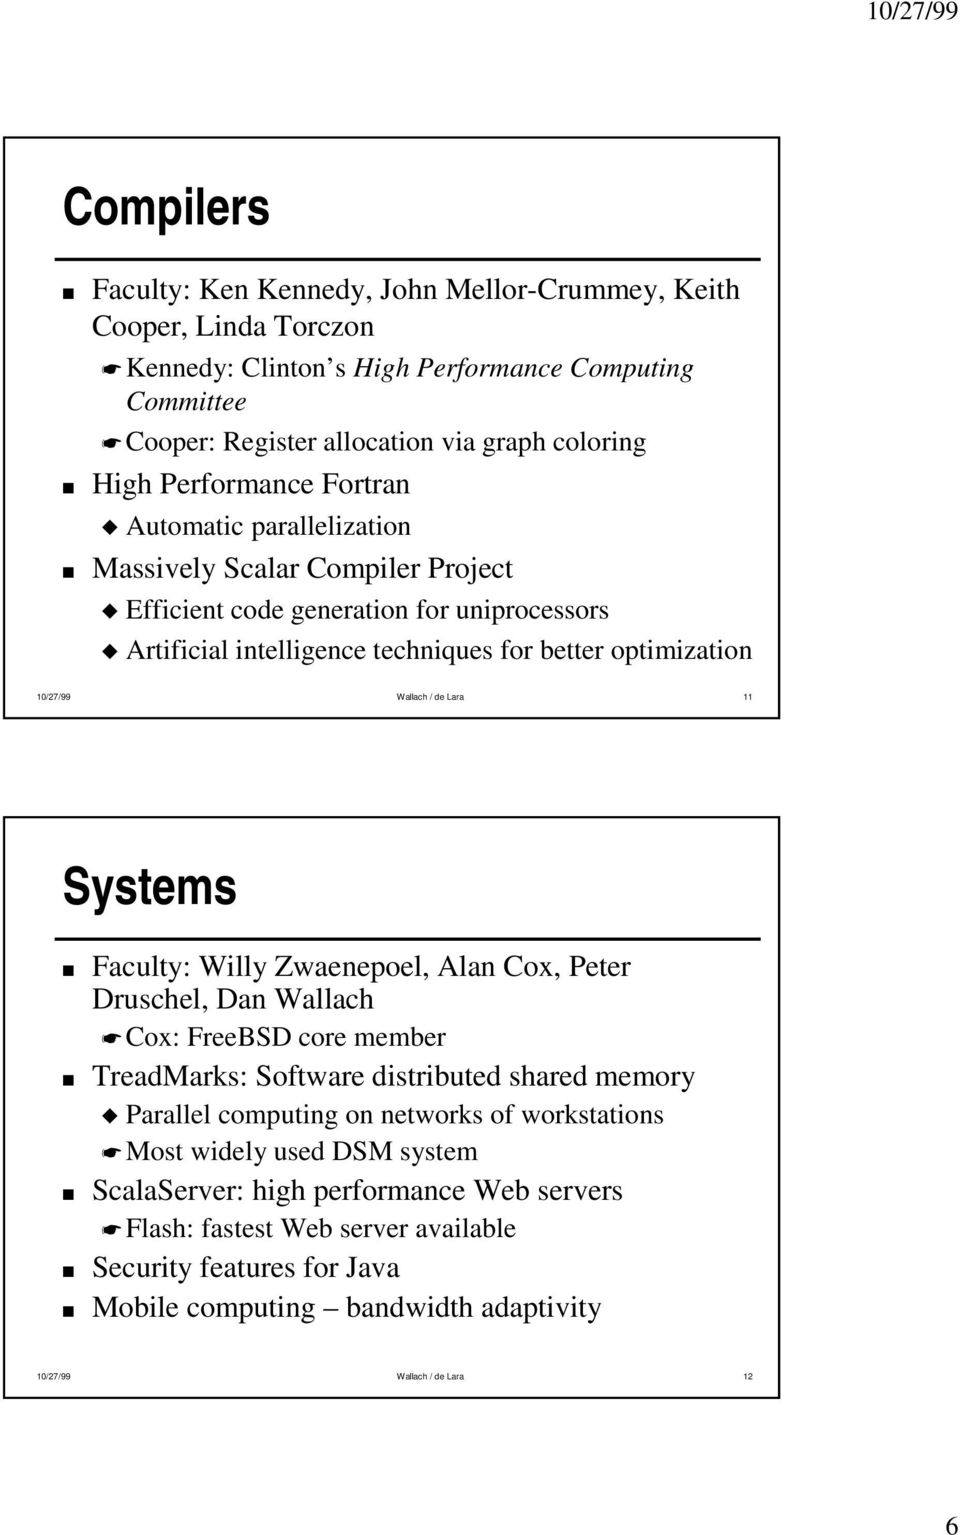 Wallach / de Lara 11 Systems Faculty: Willy Zwaenepoel, Alan Cox, Peter Druschel, Dan Wallach Cox: FreeBSD core member TreadMarks: Software distributed shared memory Parallel computing on networks